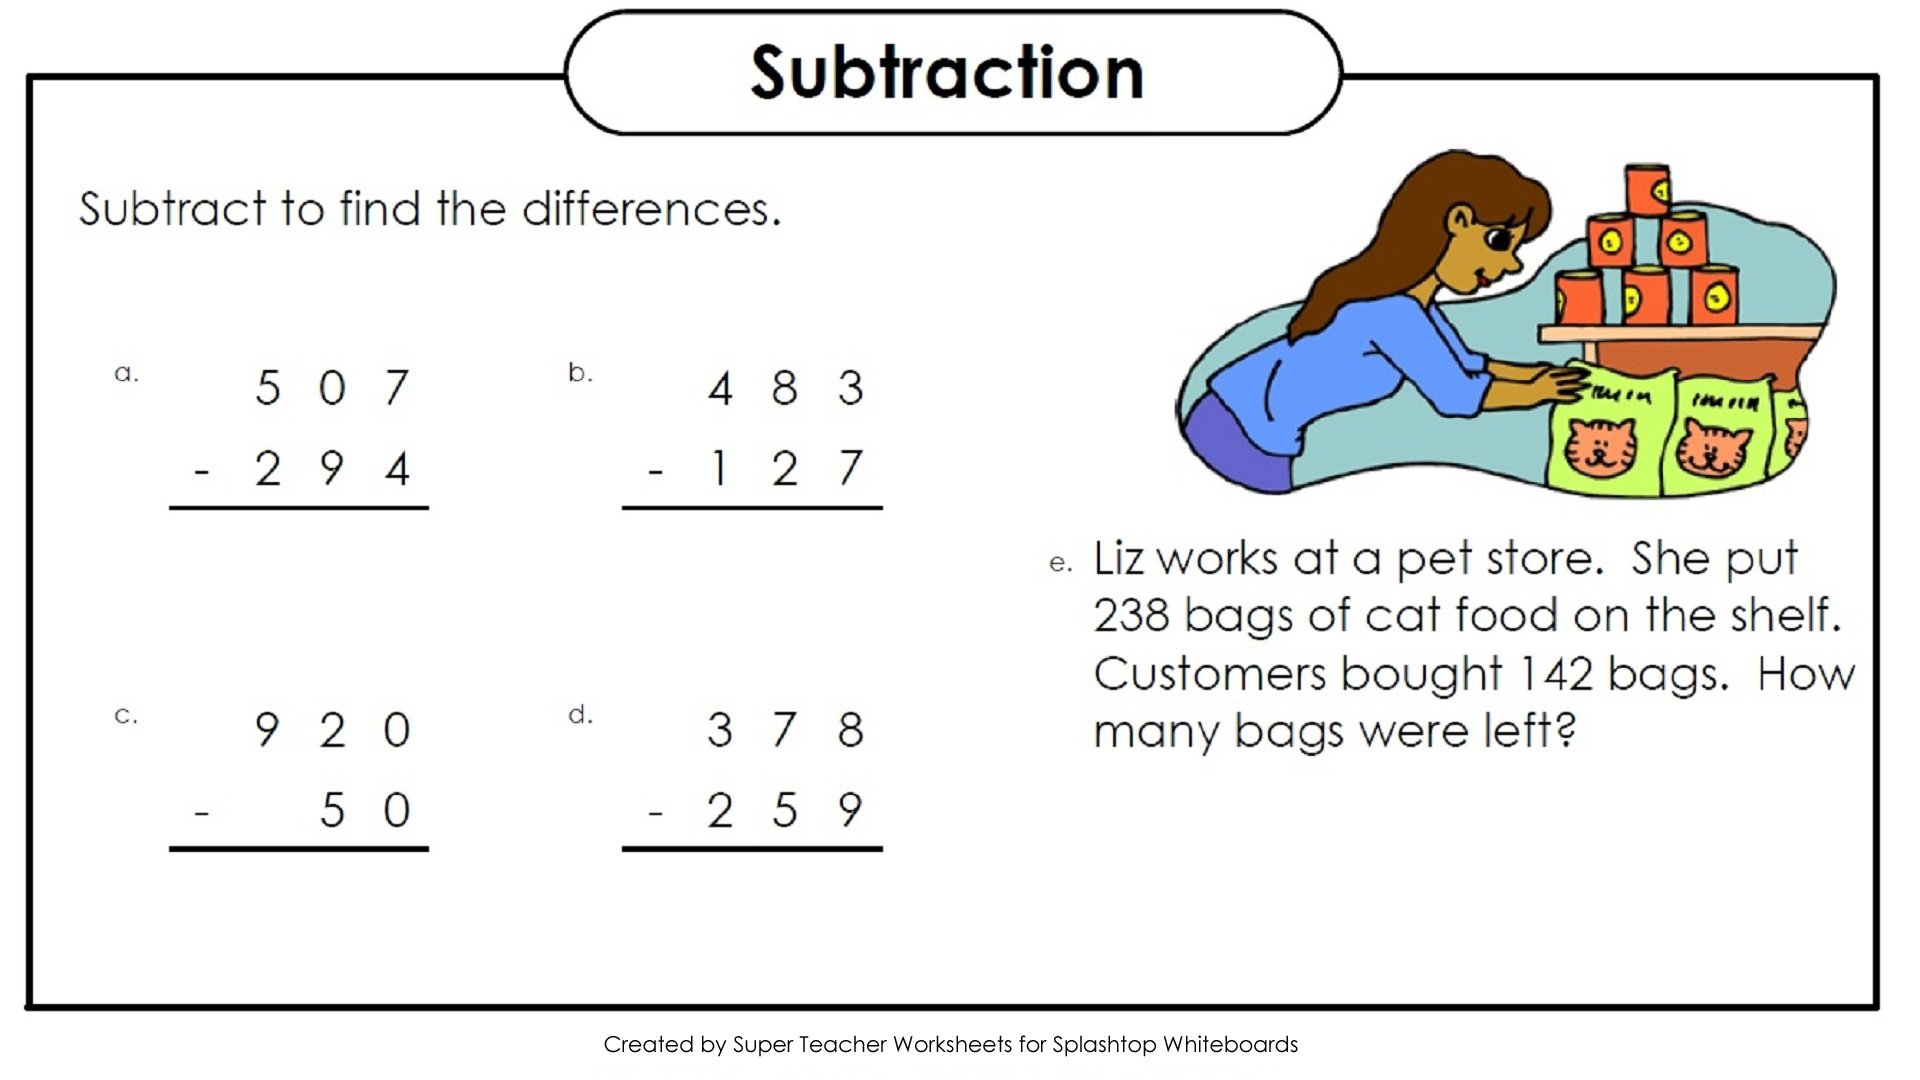 Worksheets Super Teacher Worksheets Science whiteboard background graphics three digit subtraction